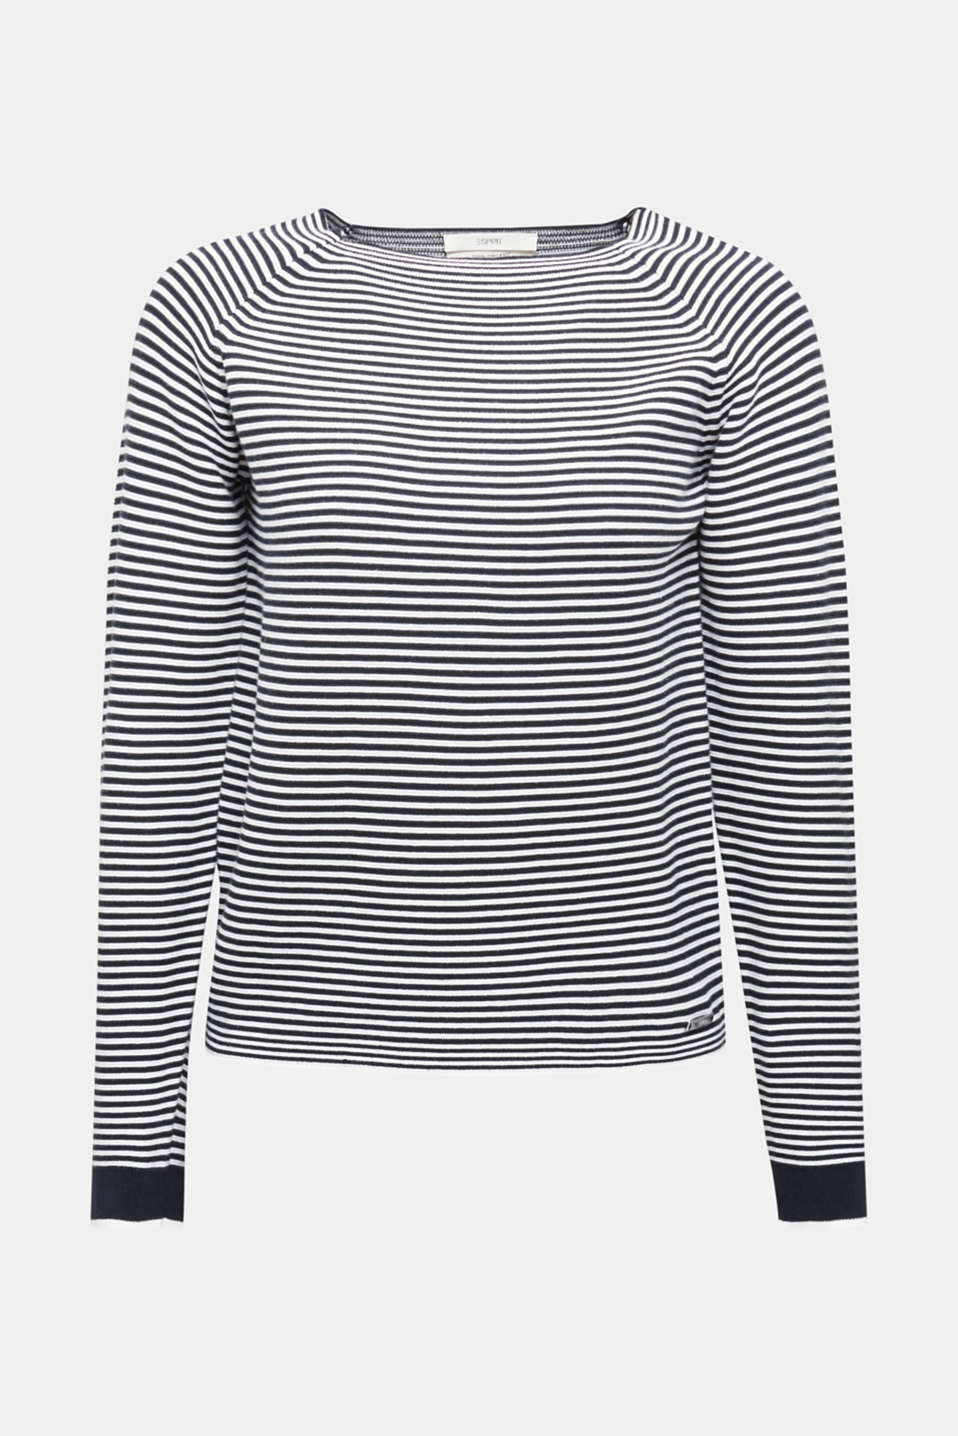 Striped jumper, 100% organic cotton, NAVY 2, detail image number 6